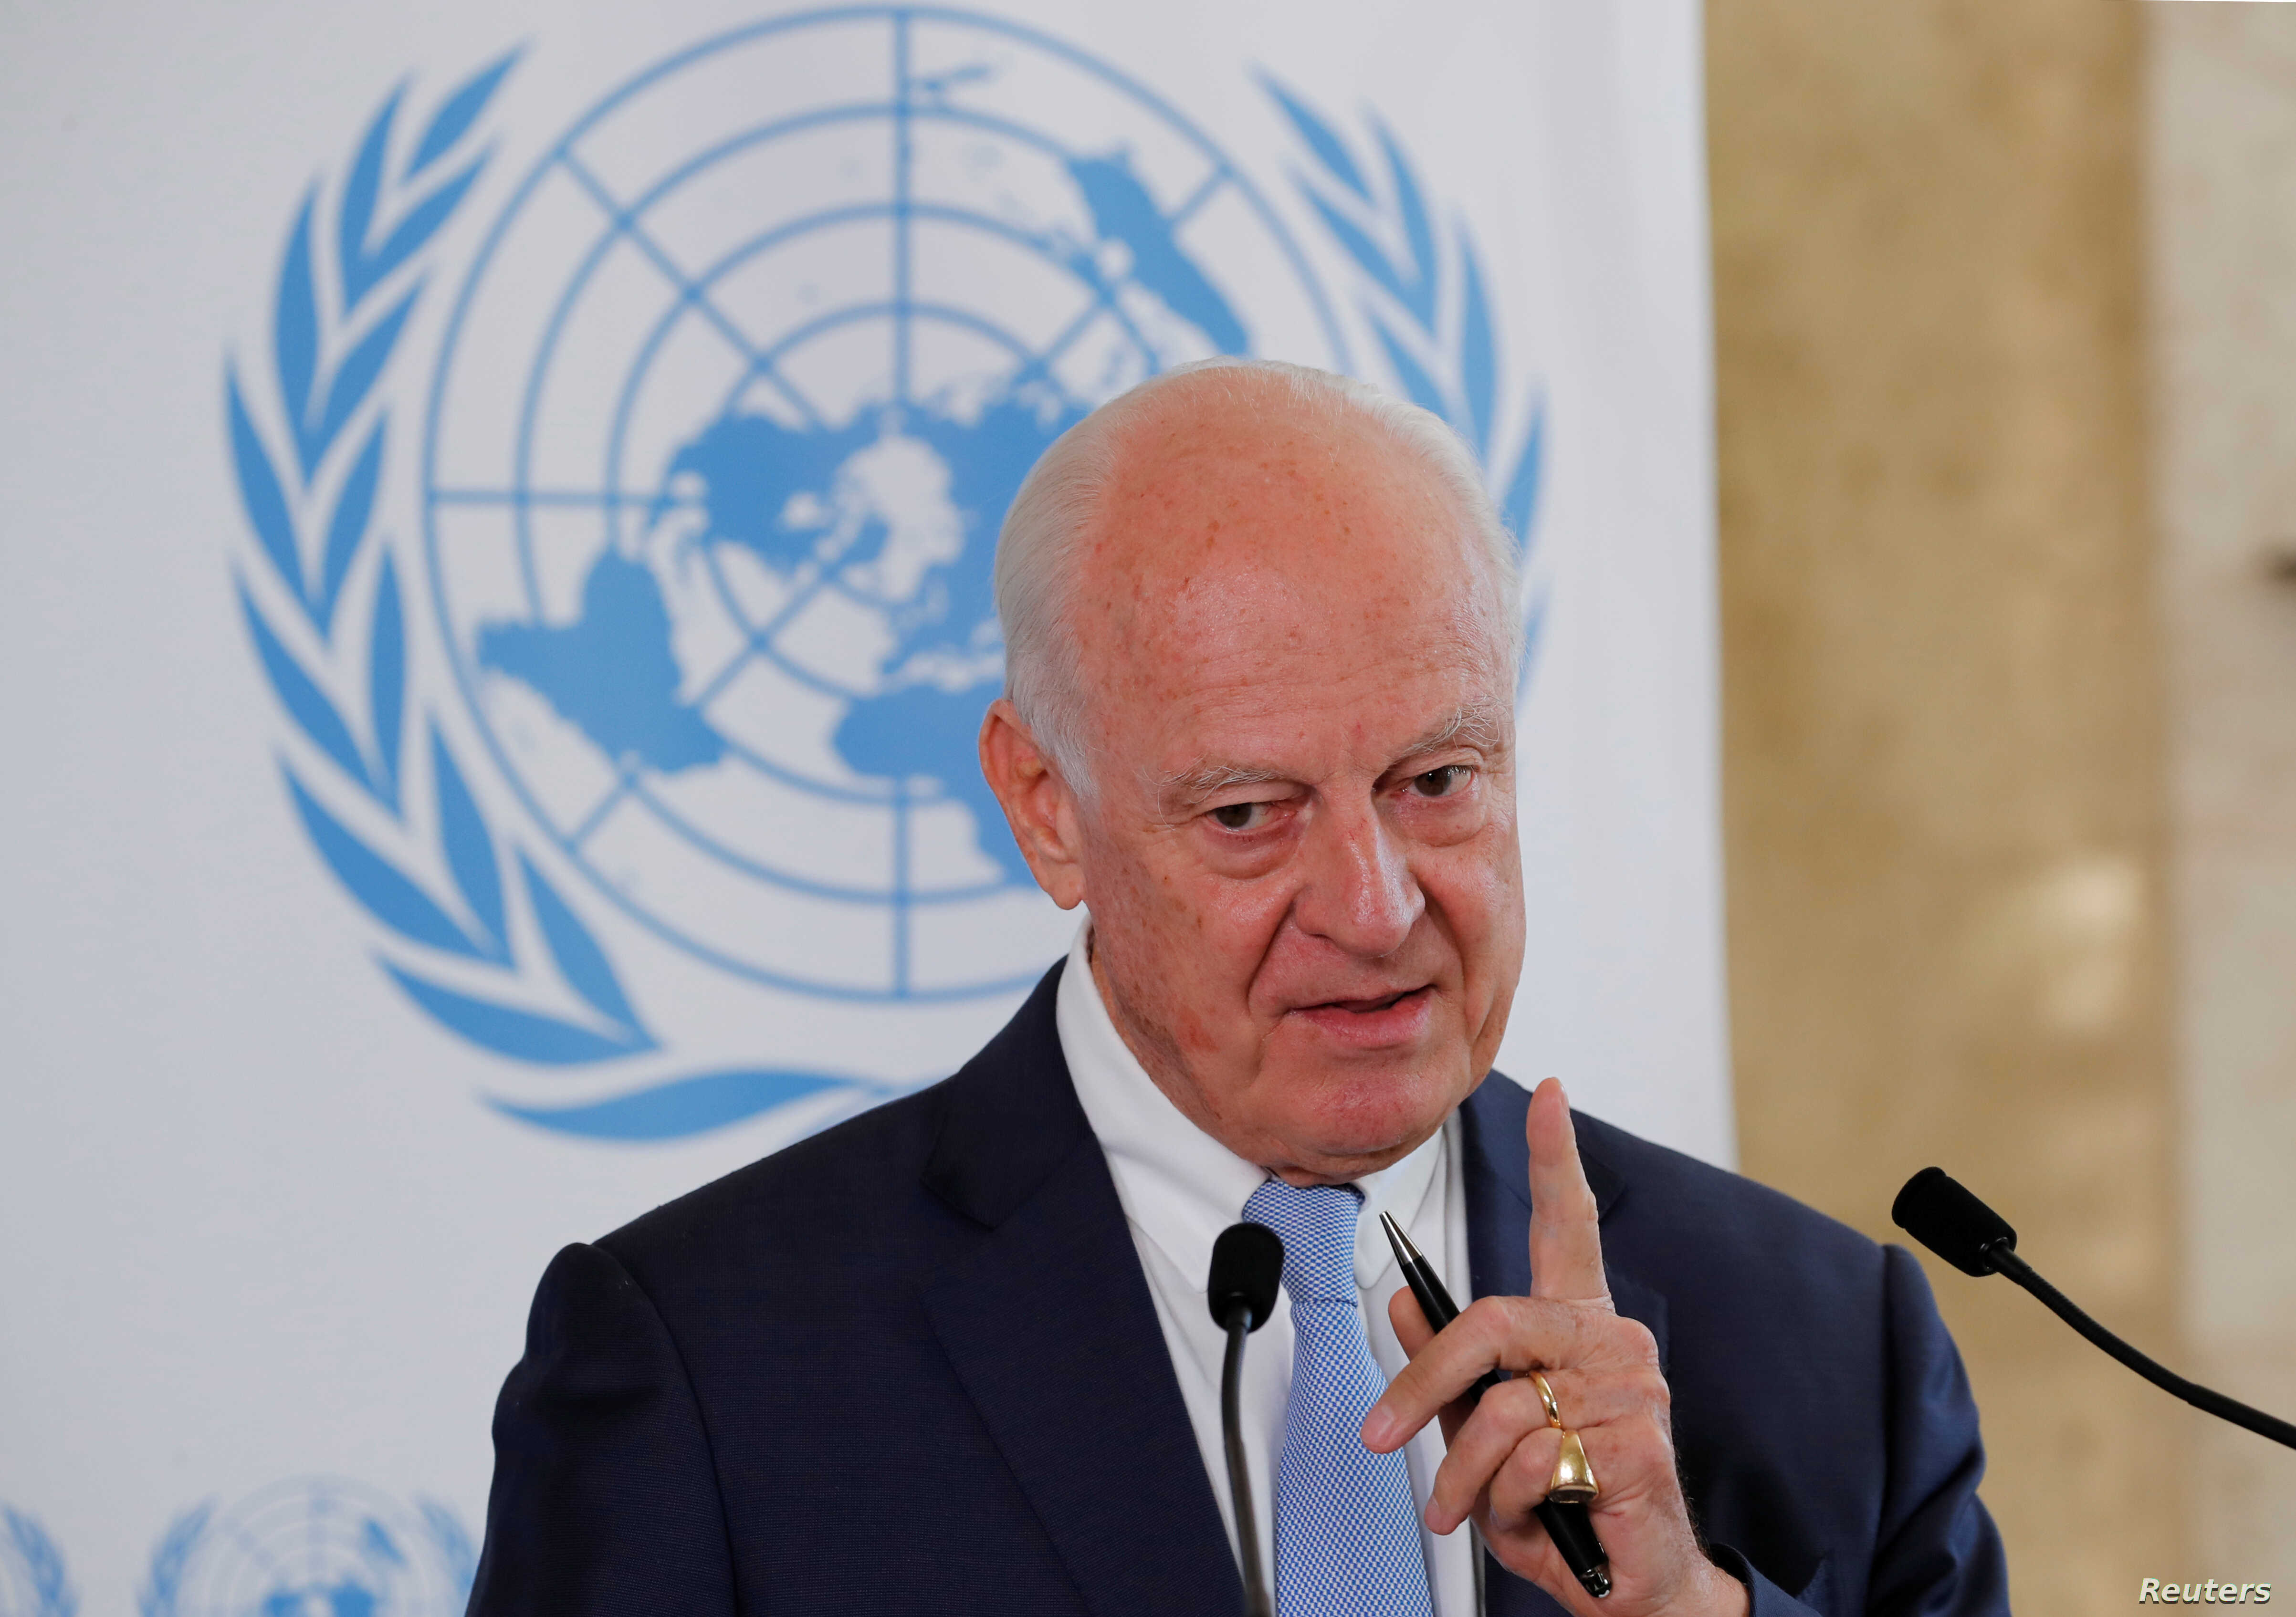 U.N. Syria envoy Staffan de Mistura attends a news conference at the United Nations in Geneva, Switzerland, Sept. 4, 2018.